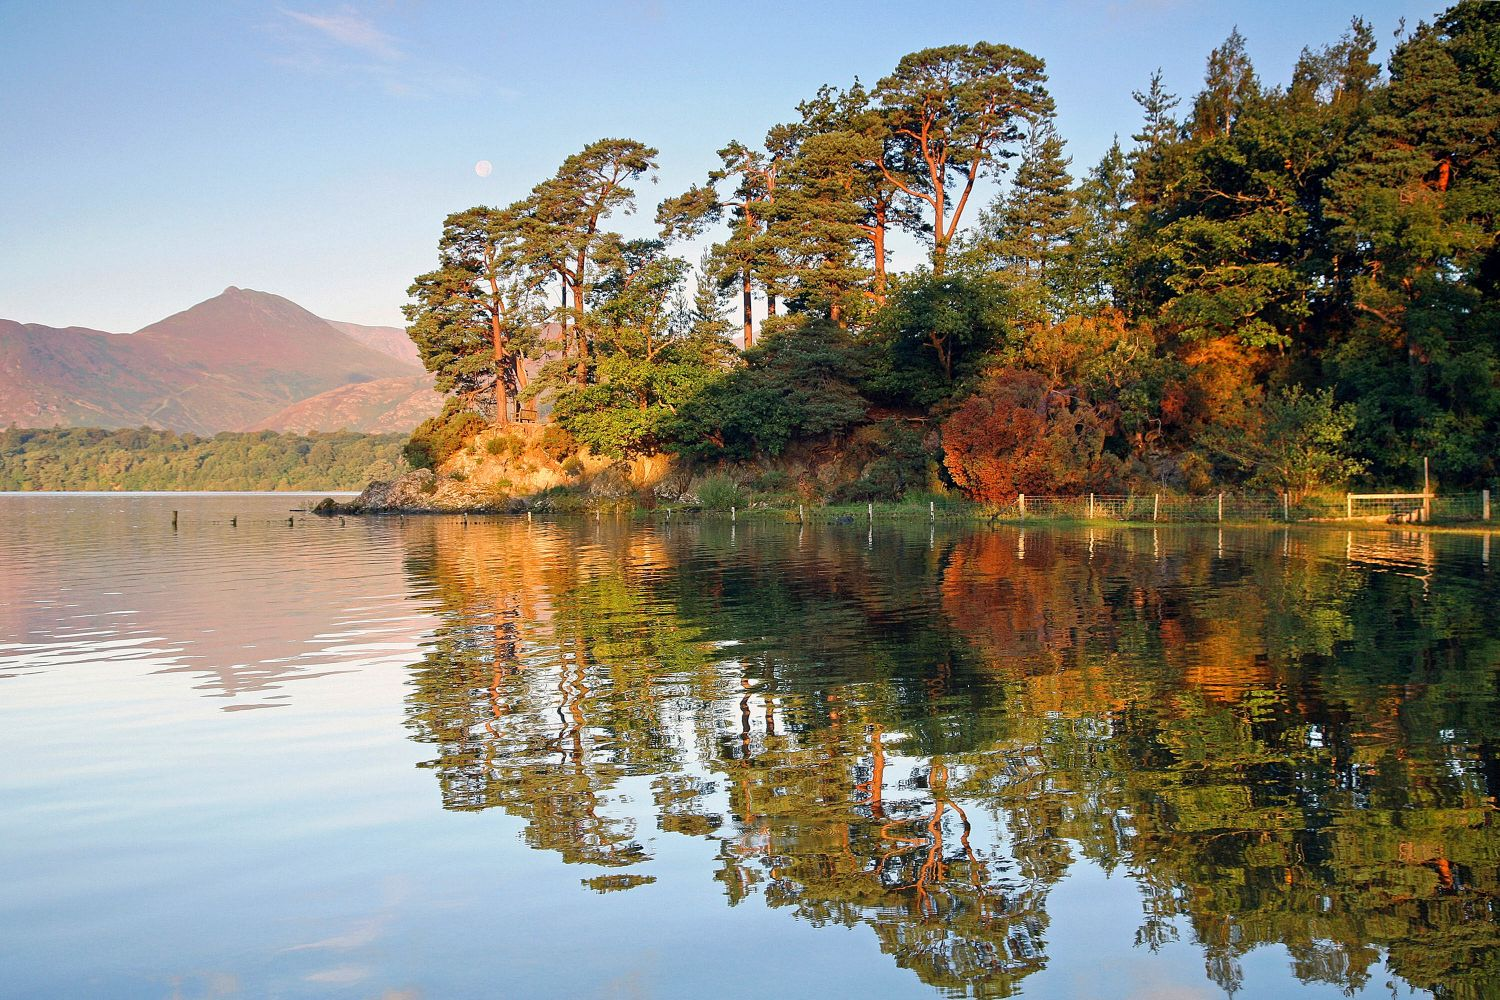 Autumn sunshine at Friars Crag with the trees reflecting beautifully in the lake.